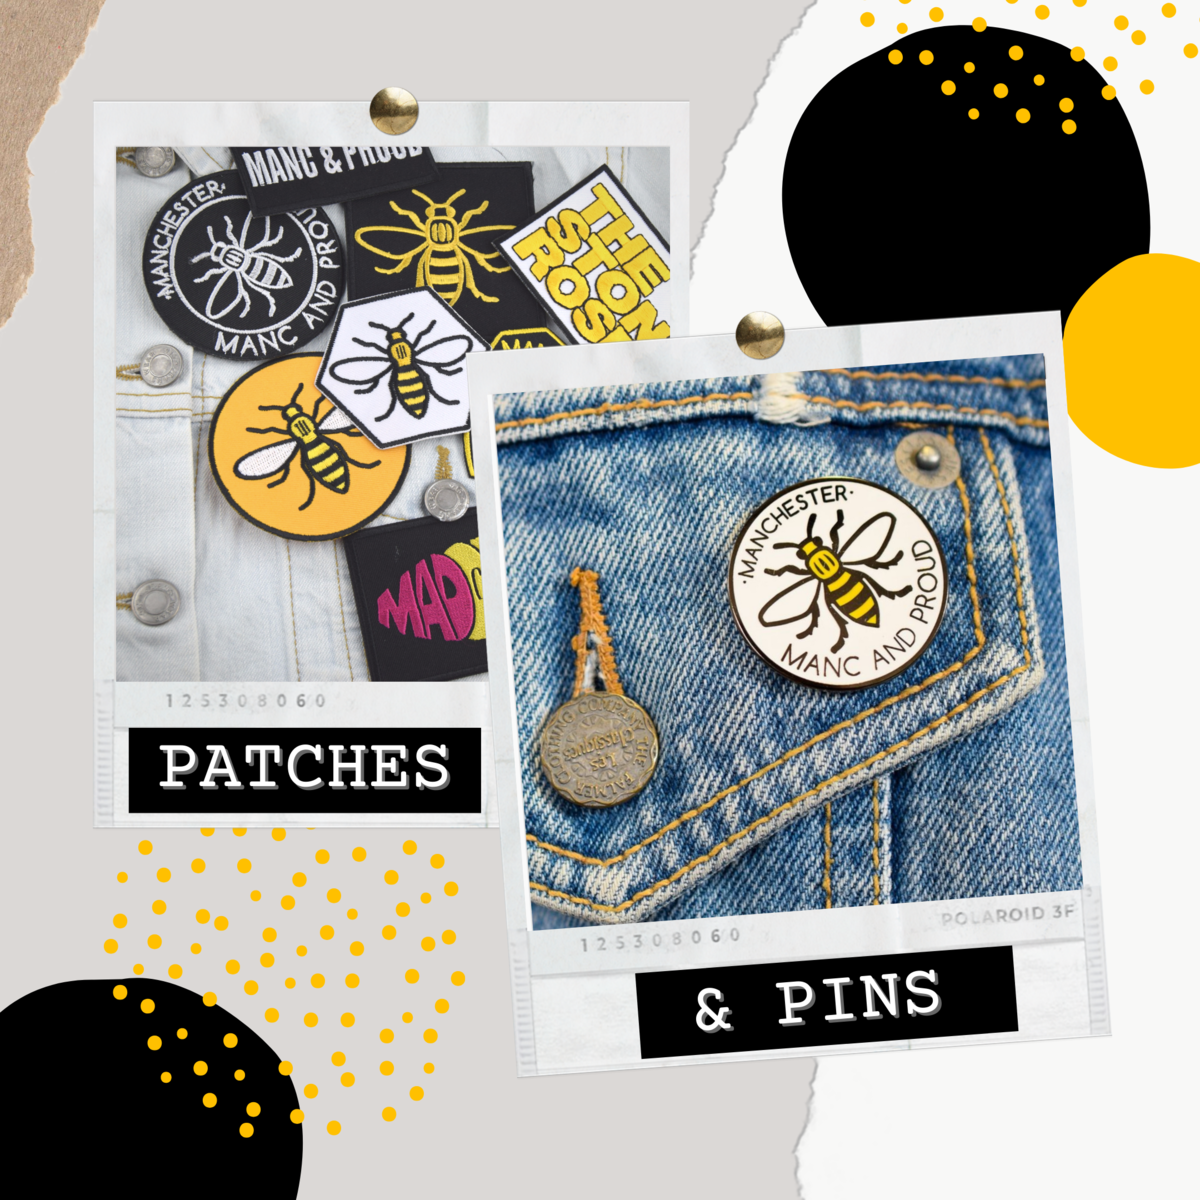 Get Creative with Patches & Pins - The Manchester Shop